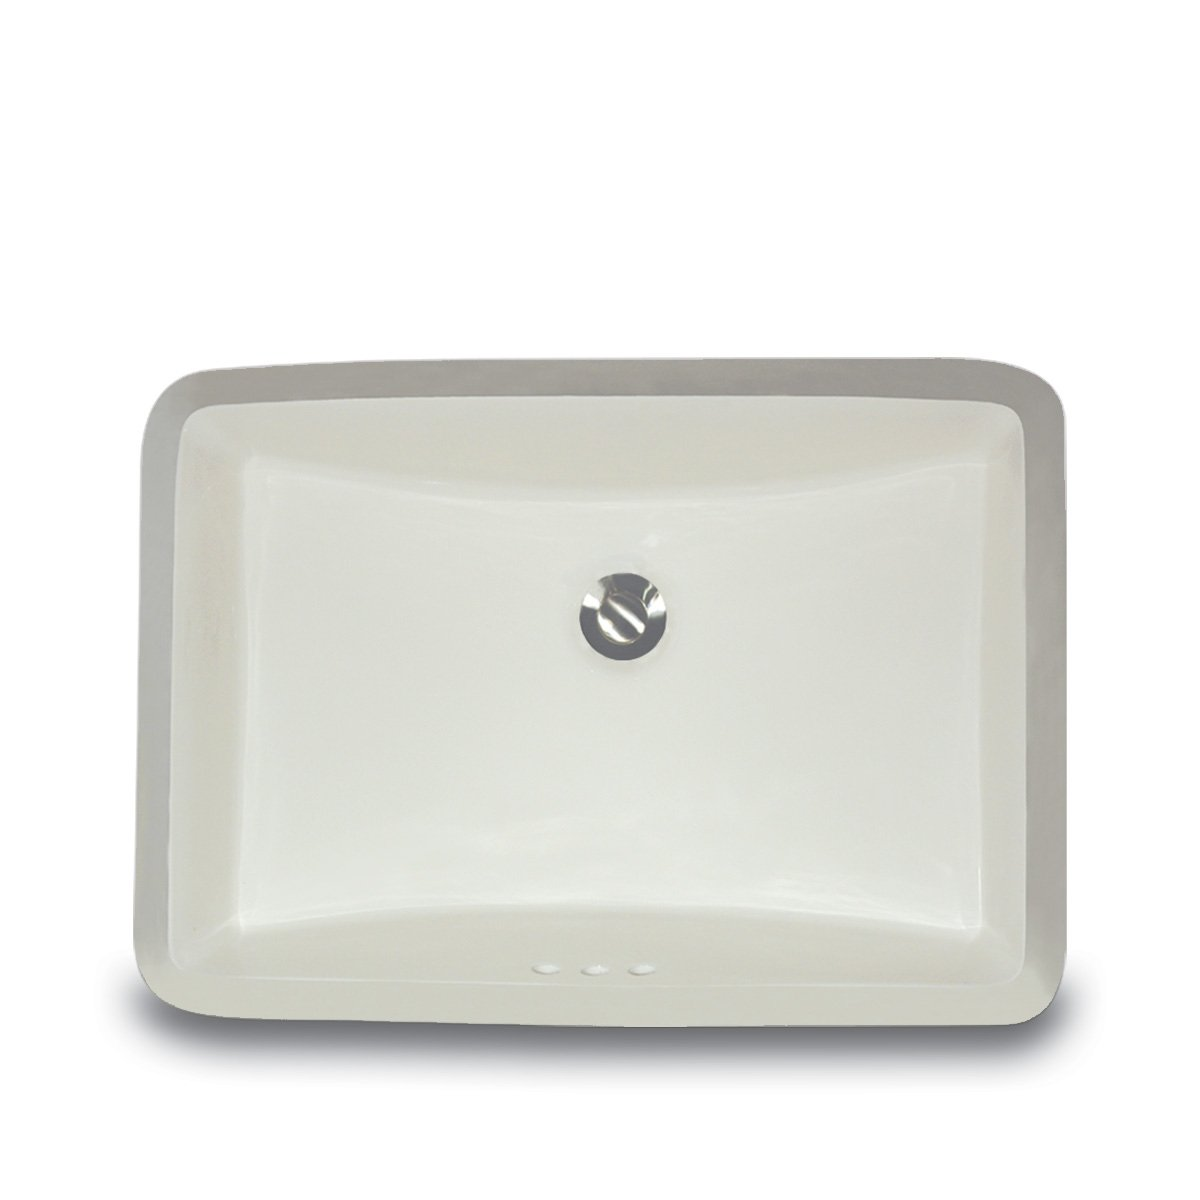 Vitreous China Rectangular Undercounter Bathroom Sink Sink Finish: Biscuit